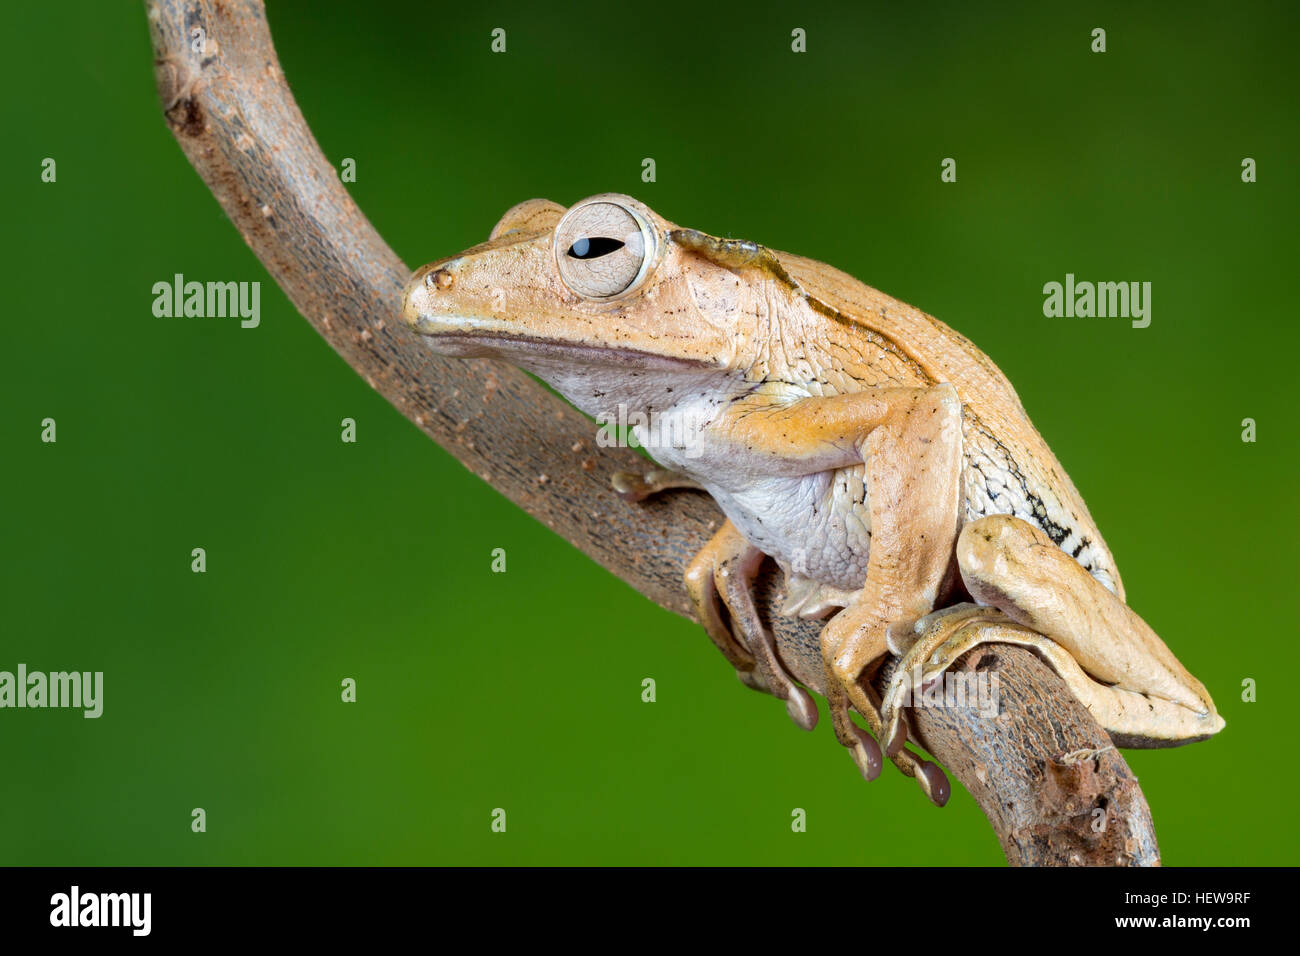 Portrait of a Borneo eared frog Stock Photo